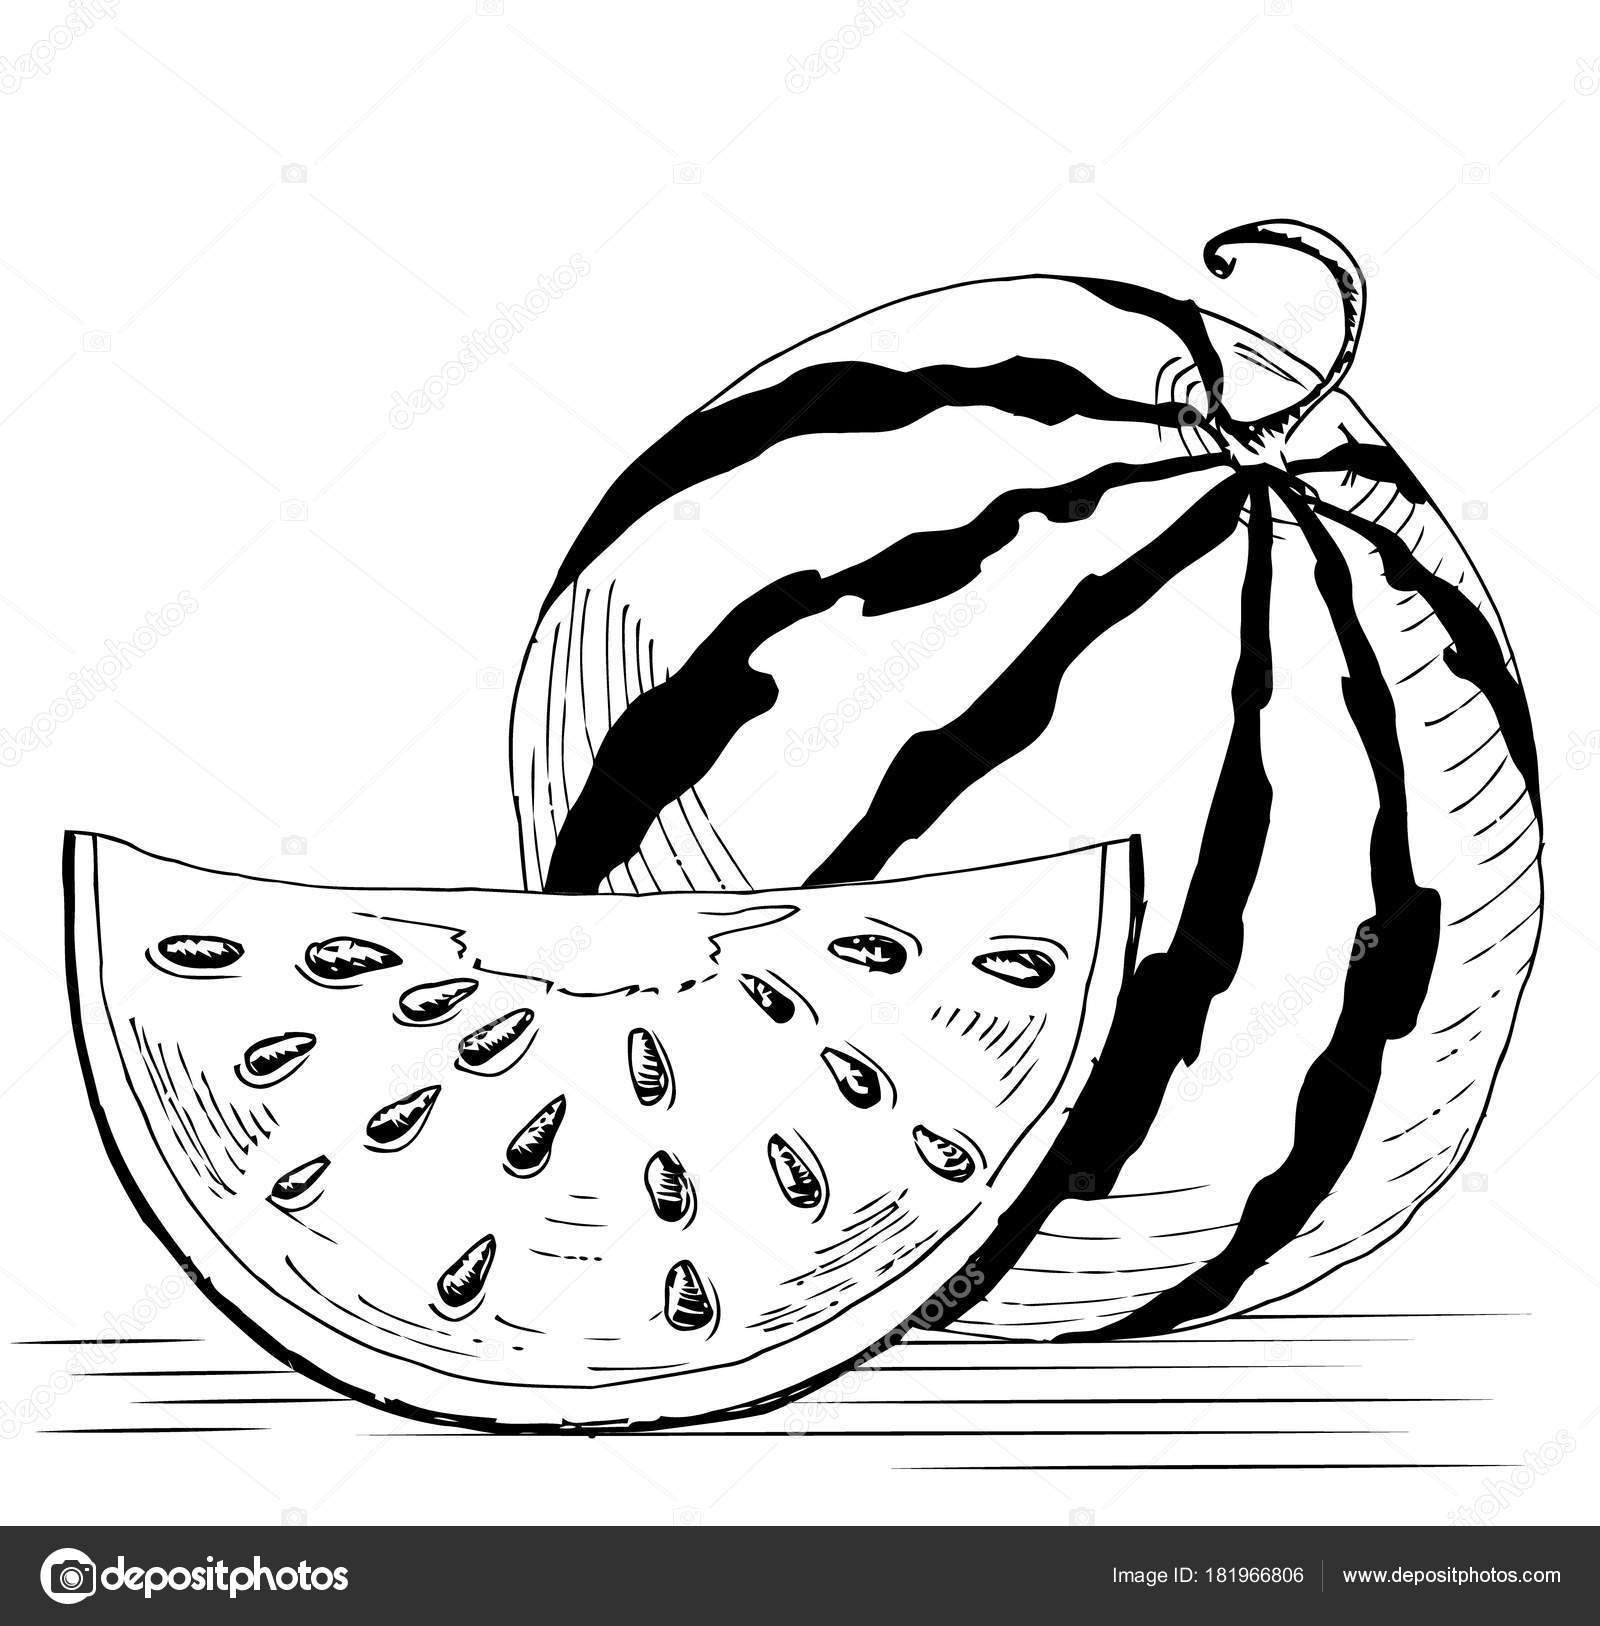 Sketch Of A Whole Watermelon And Slices Handmade Drawing